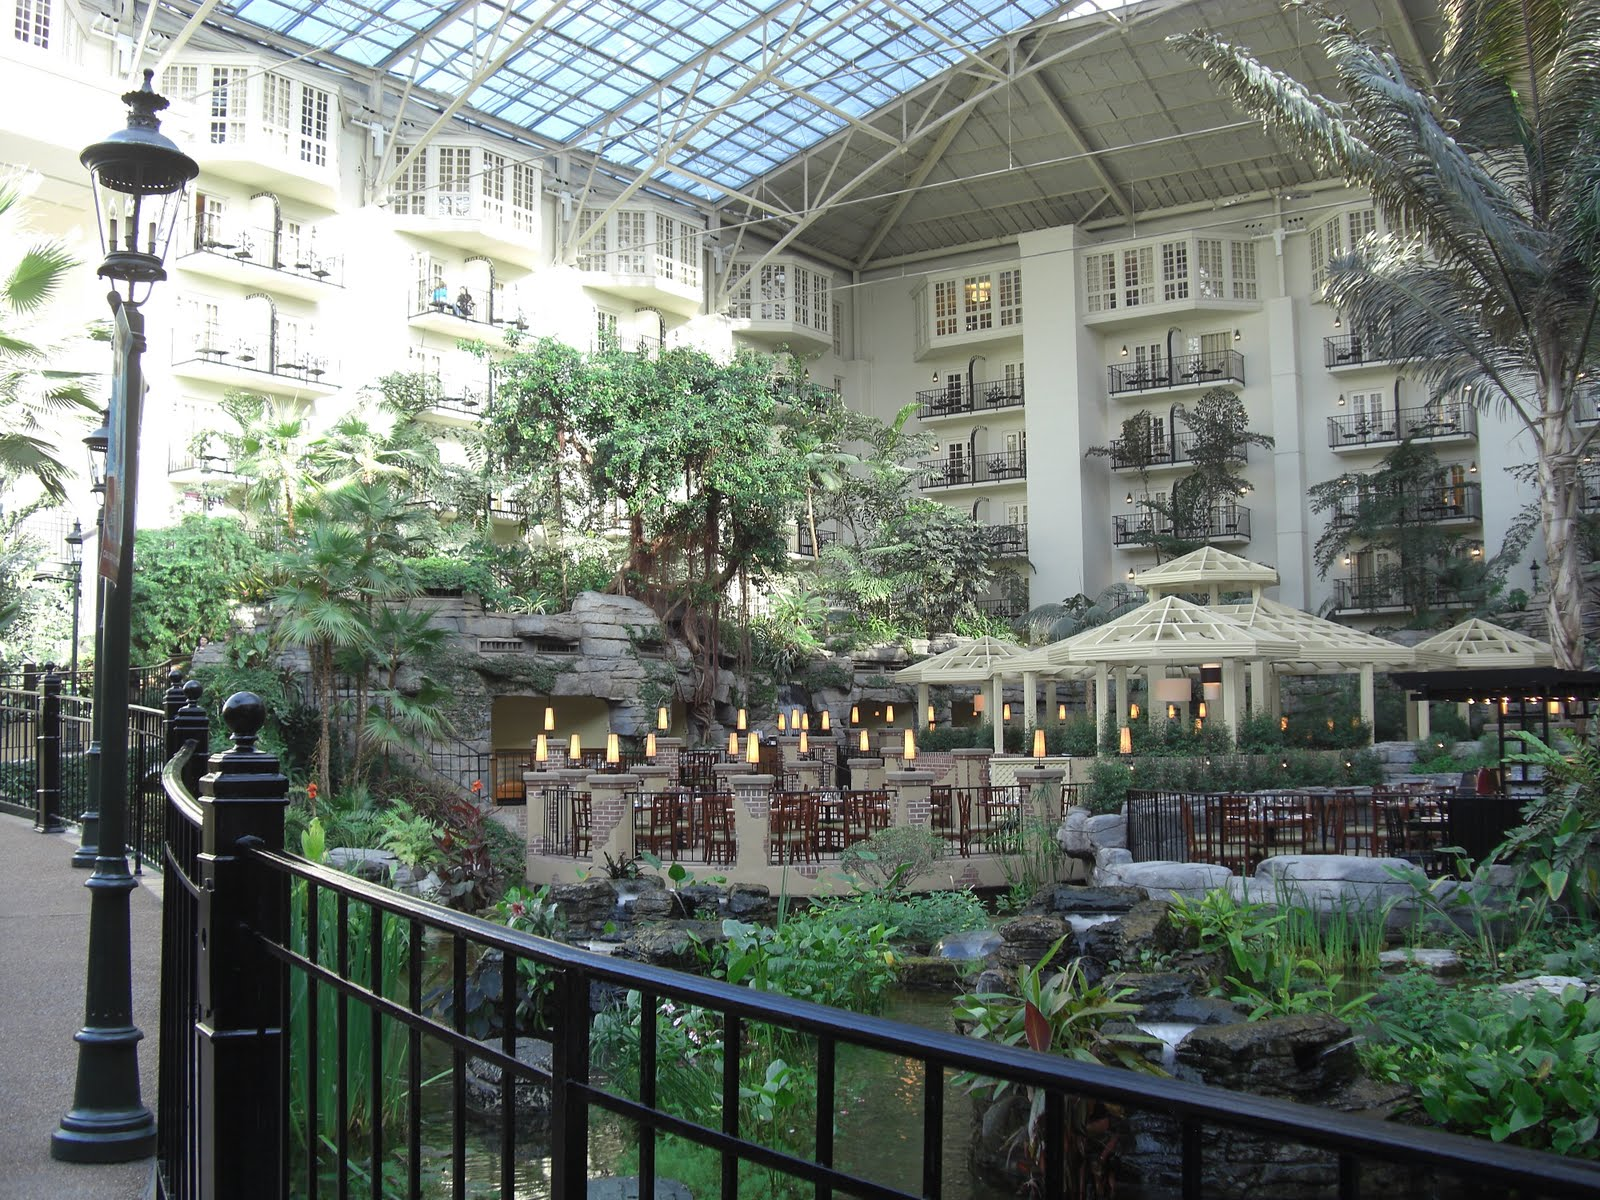 California Gaylord Hotel And Grand Ole Opry